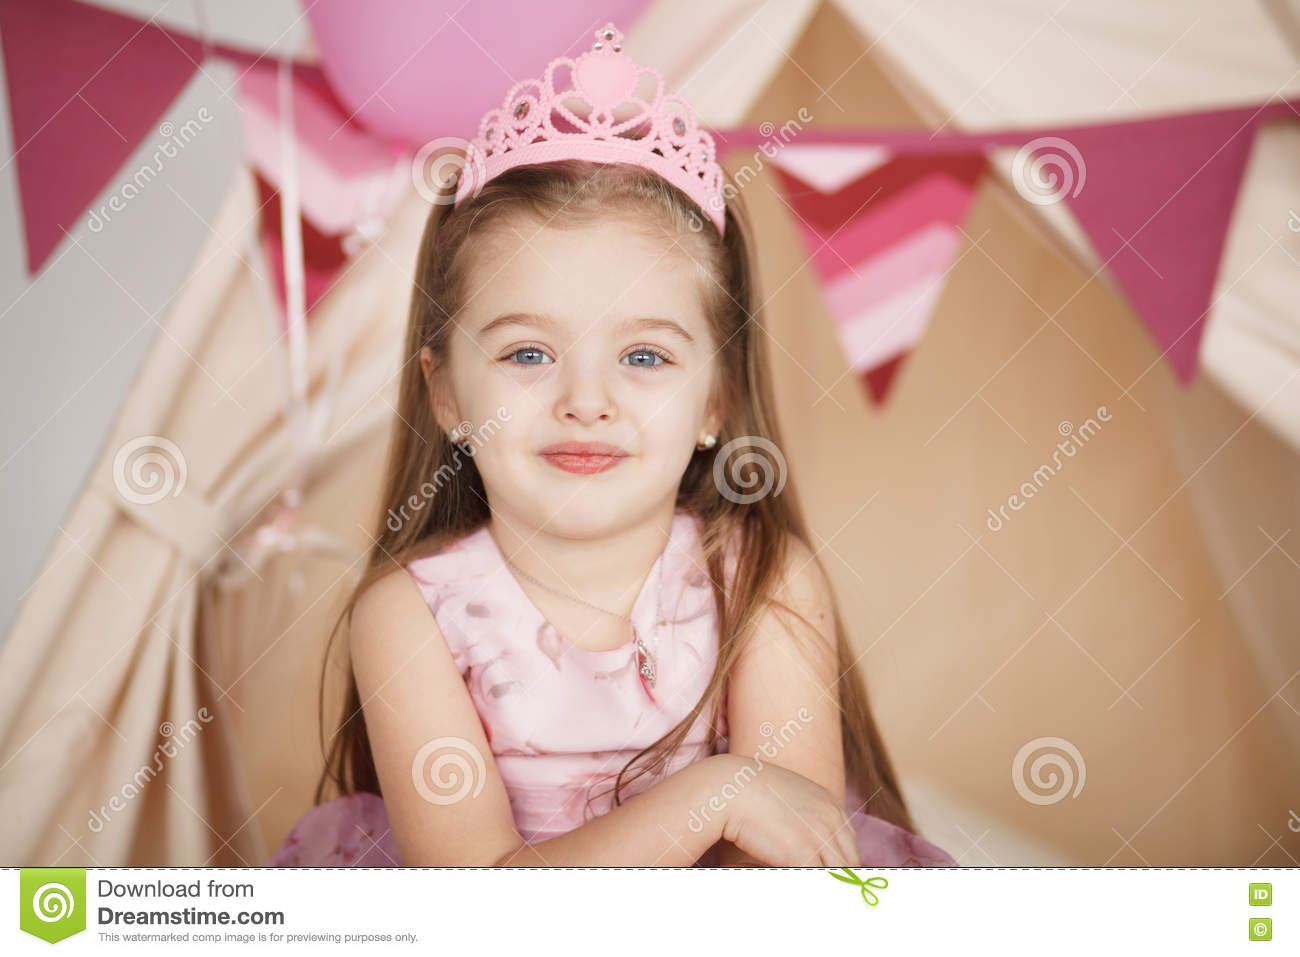 Closeup funny little princess girl in pink crown and dress